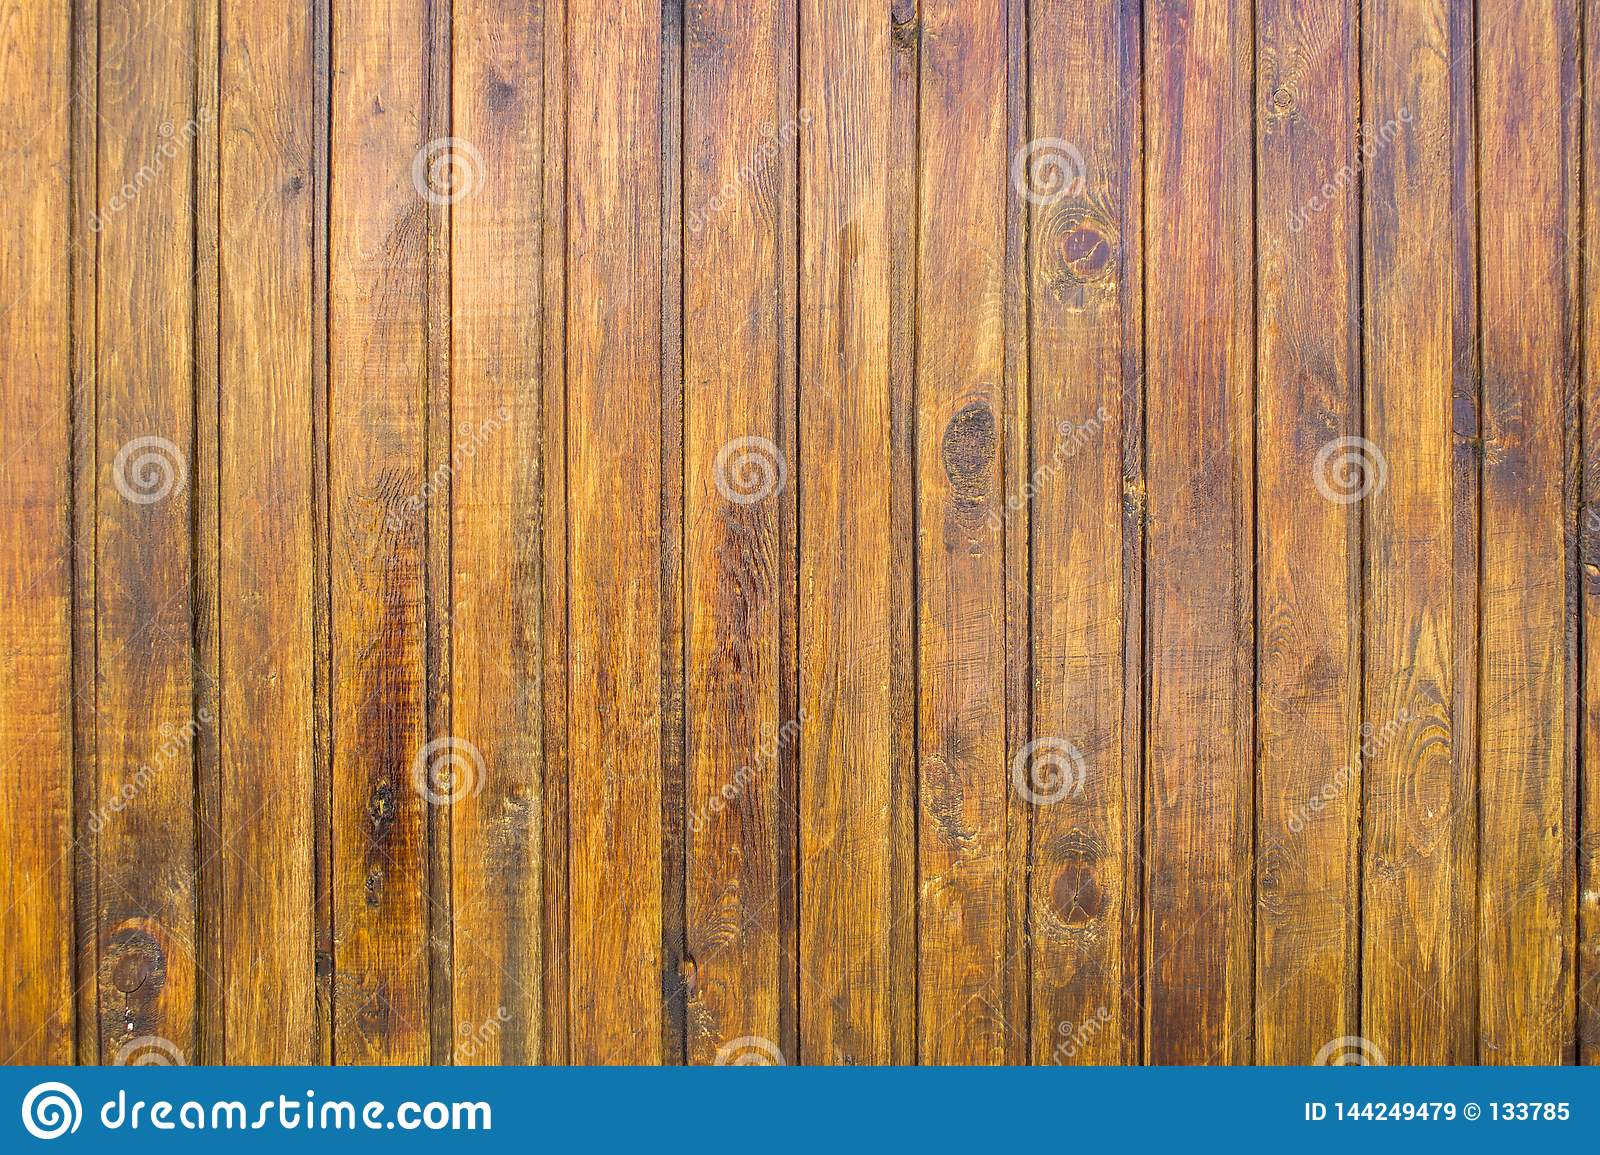 Yellow brown fence wall of wooden planks. vertical lines. rough surface texture